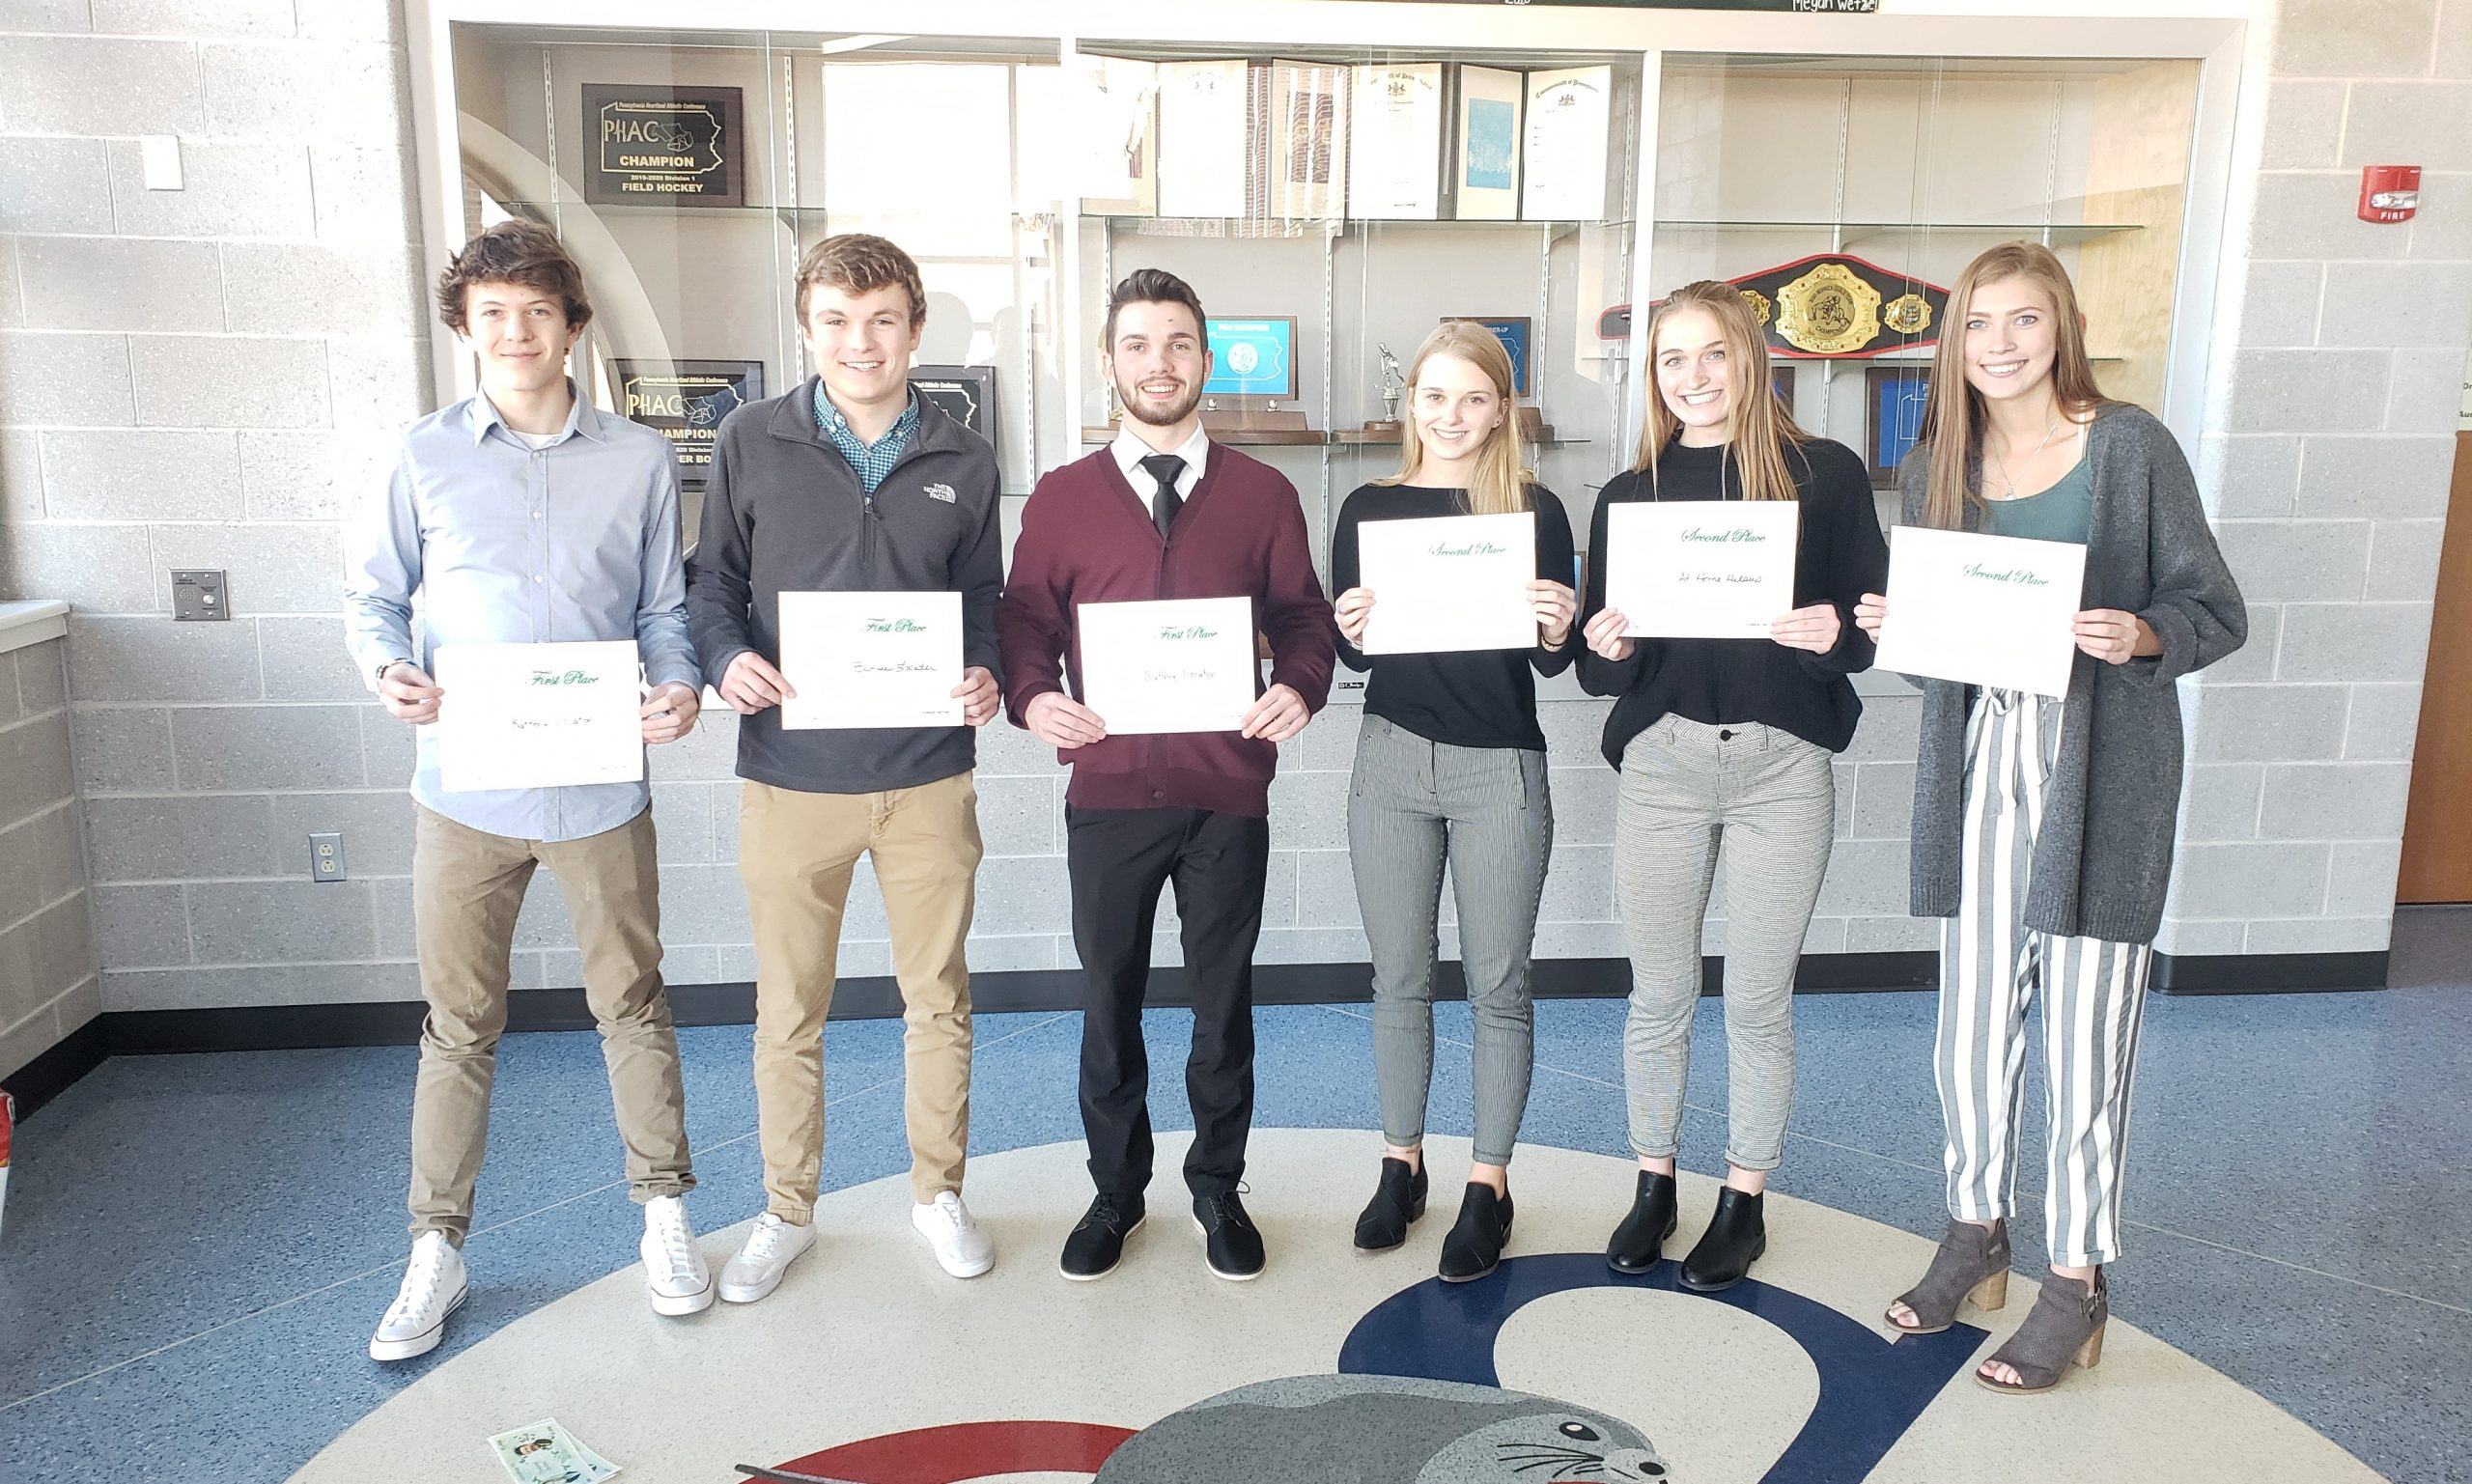 The Entrepreneurship Teams:  Battery Locator (Ben Beiler, Ben Heim, Josh Nylund) and At Home Helpers (Faith Rusesky, Maddie Bucher, Jess Alba) were 1st and 2nd place respectively at the PennCFL Regional Entrepreneurship Challenge